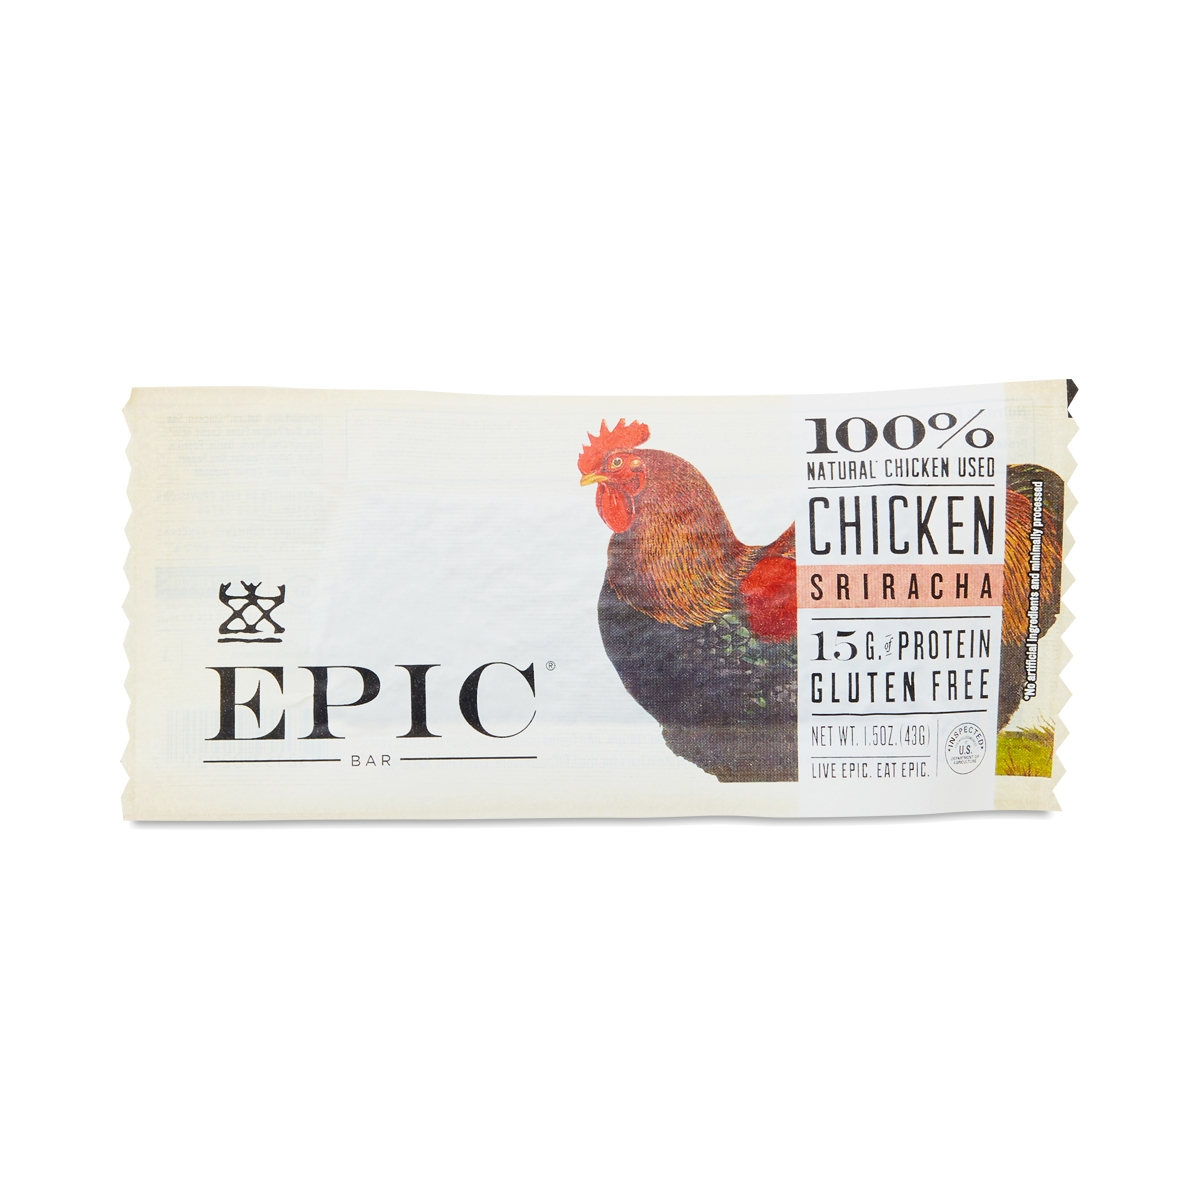 Epic Chicken Siracha Bar